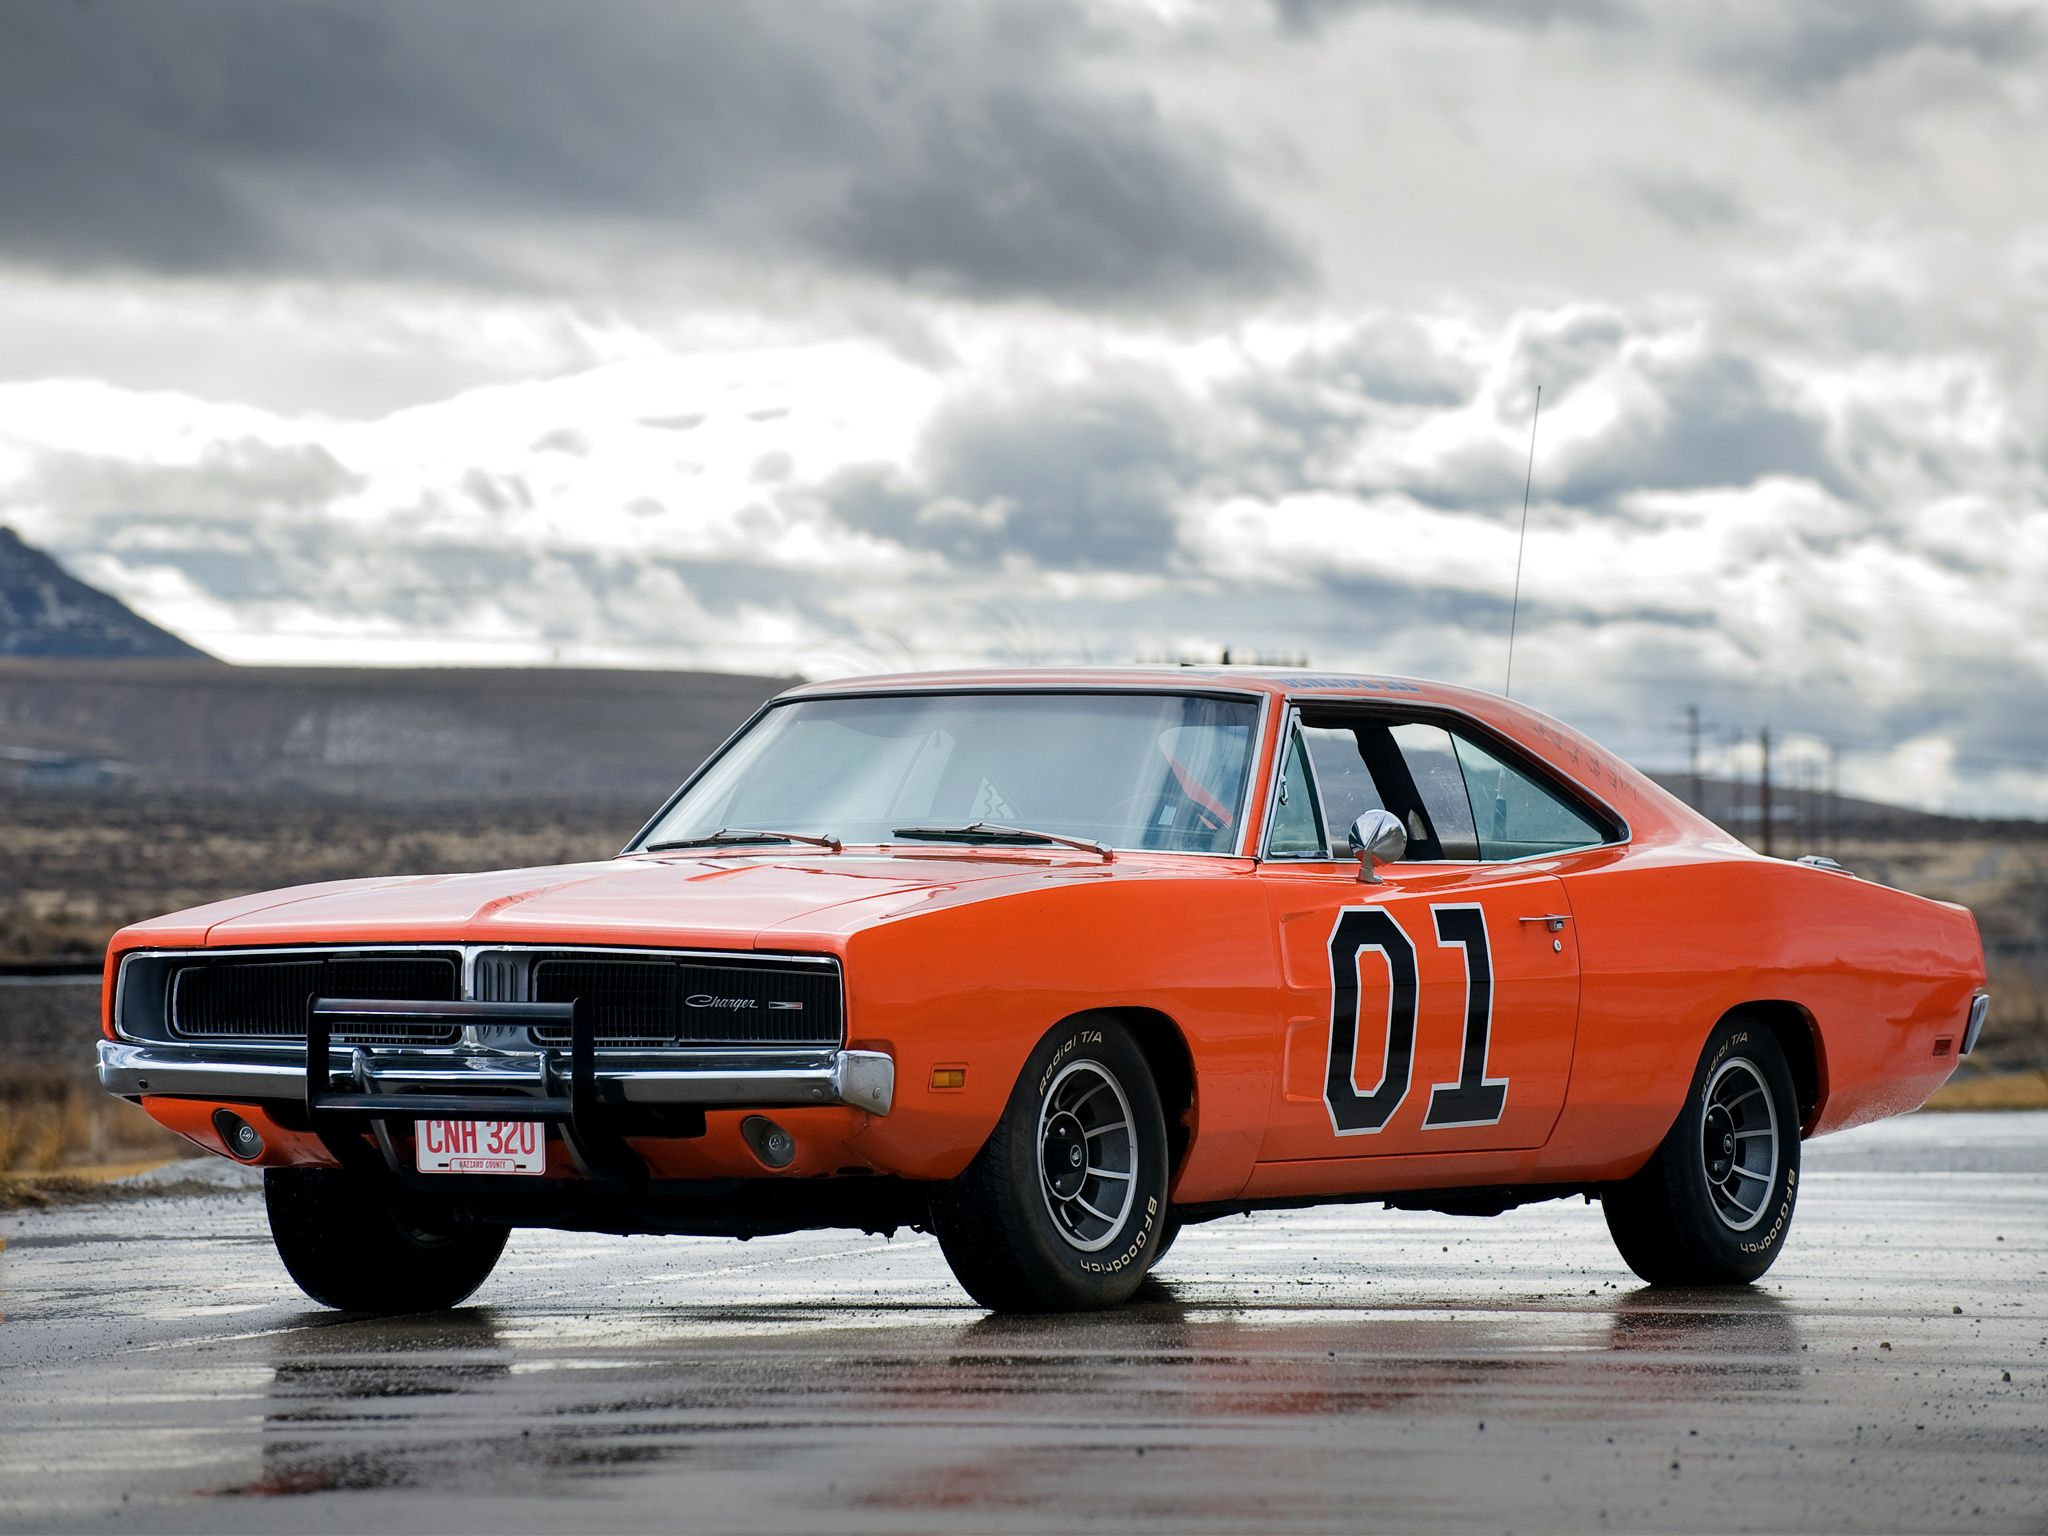 The General Lee Wallpaper In 2020 Dodge Charger Dodge Muscle Cars General Lee